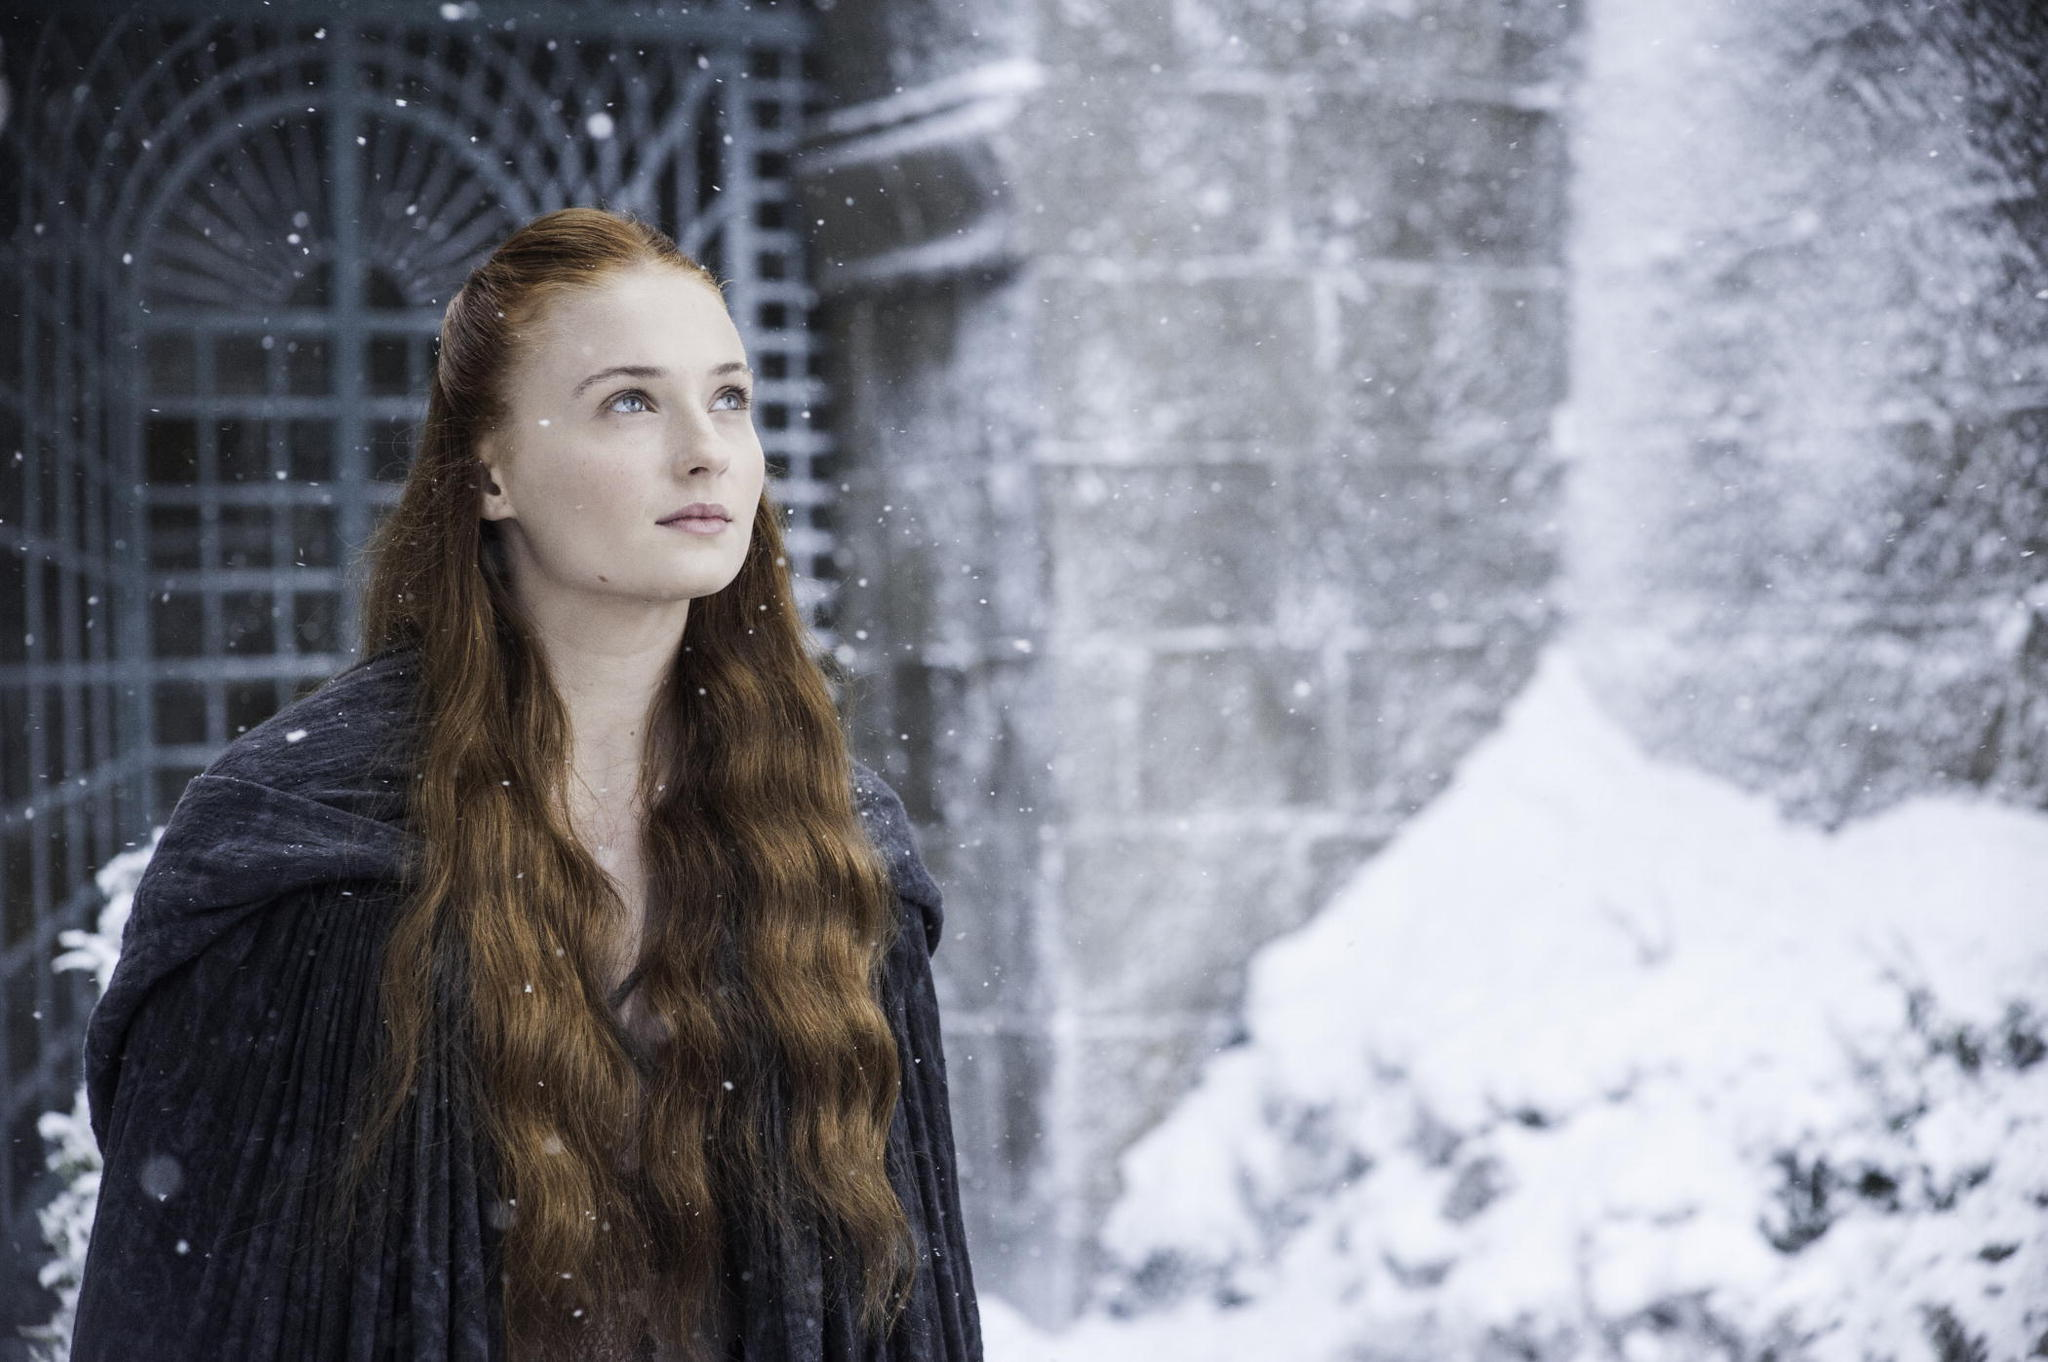 Photo de la saison 4 de la série Le Trône de fer : Game of Thrones de D.B. Weiss et David Benioff avec Sansa Stark (Sophie Turner)